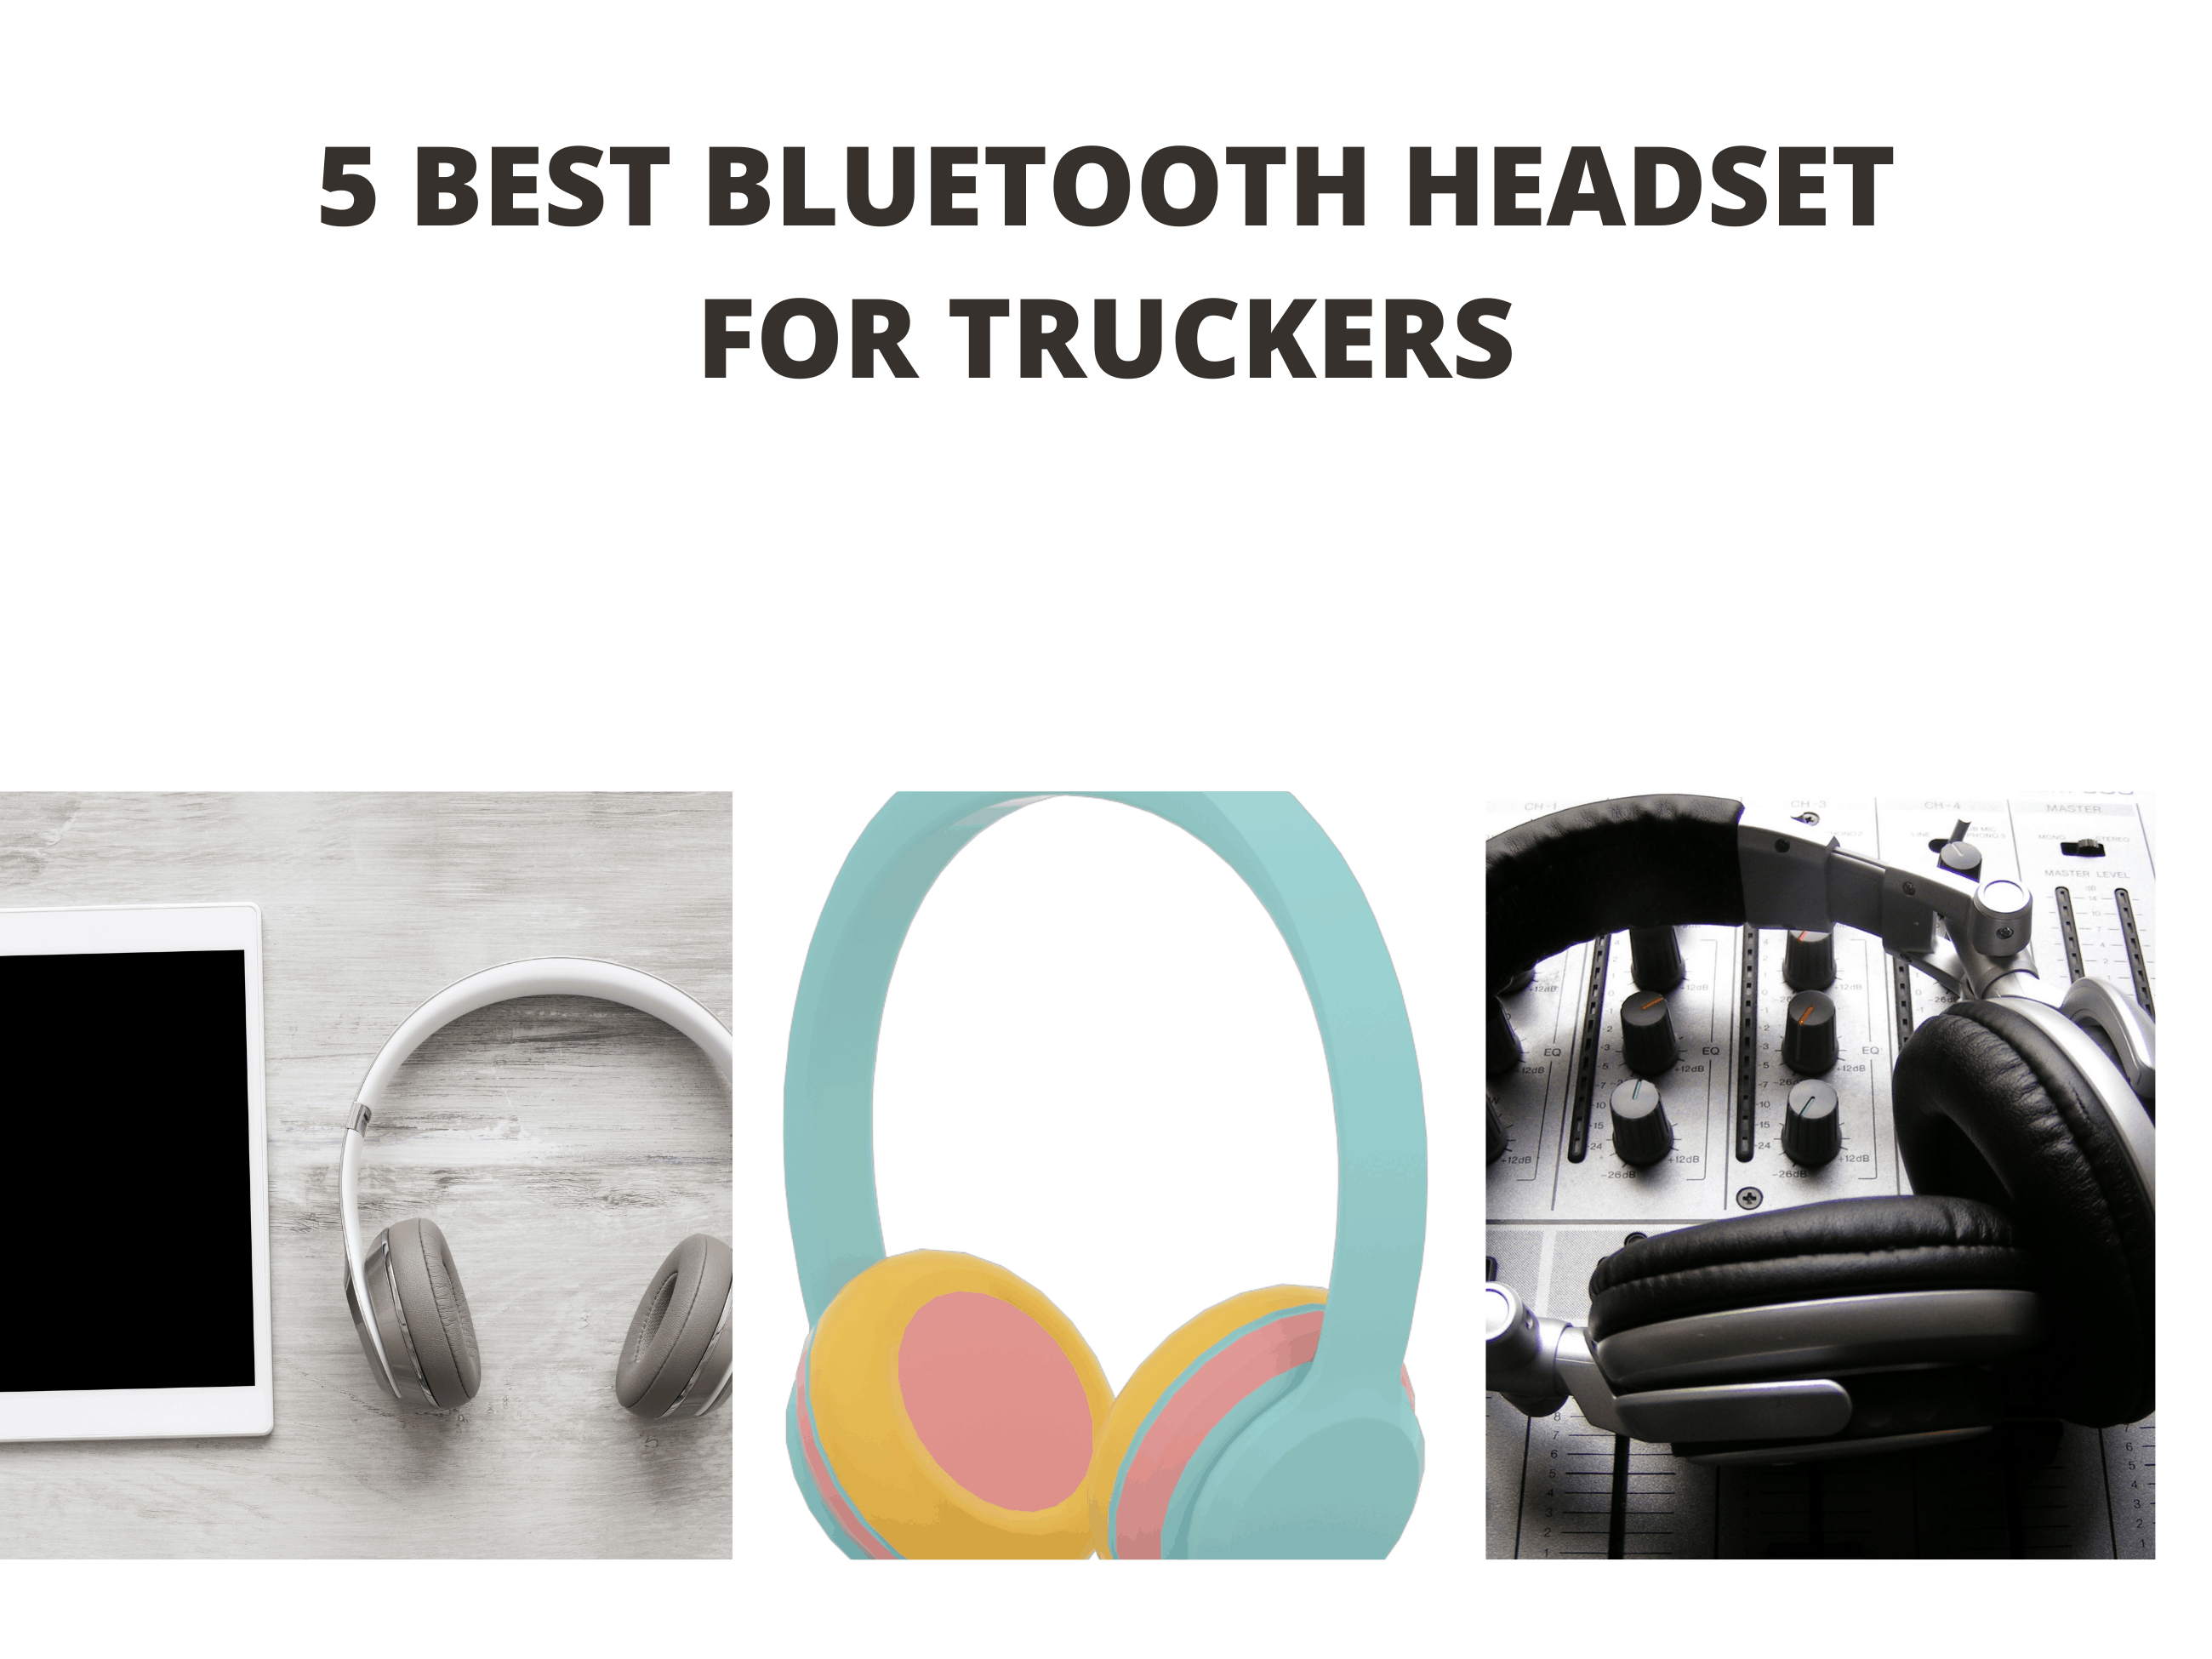 5 Best Bluetooth Headset for Truckers